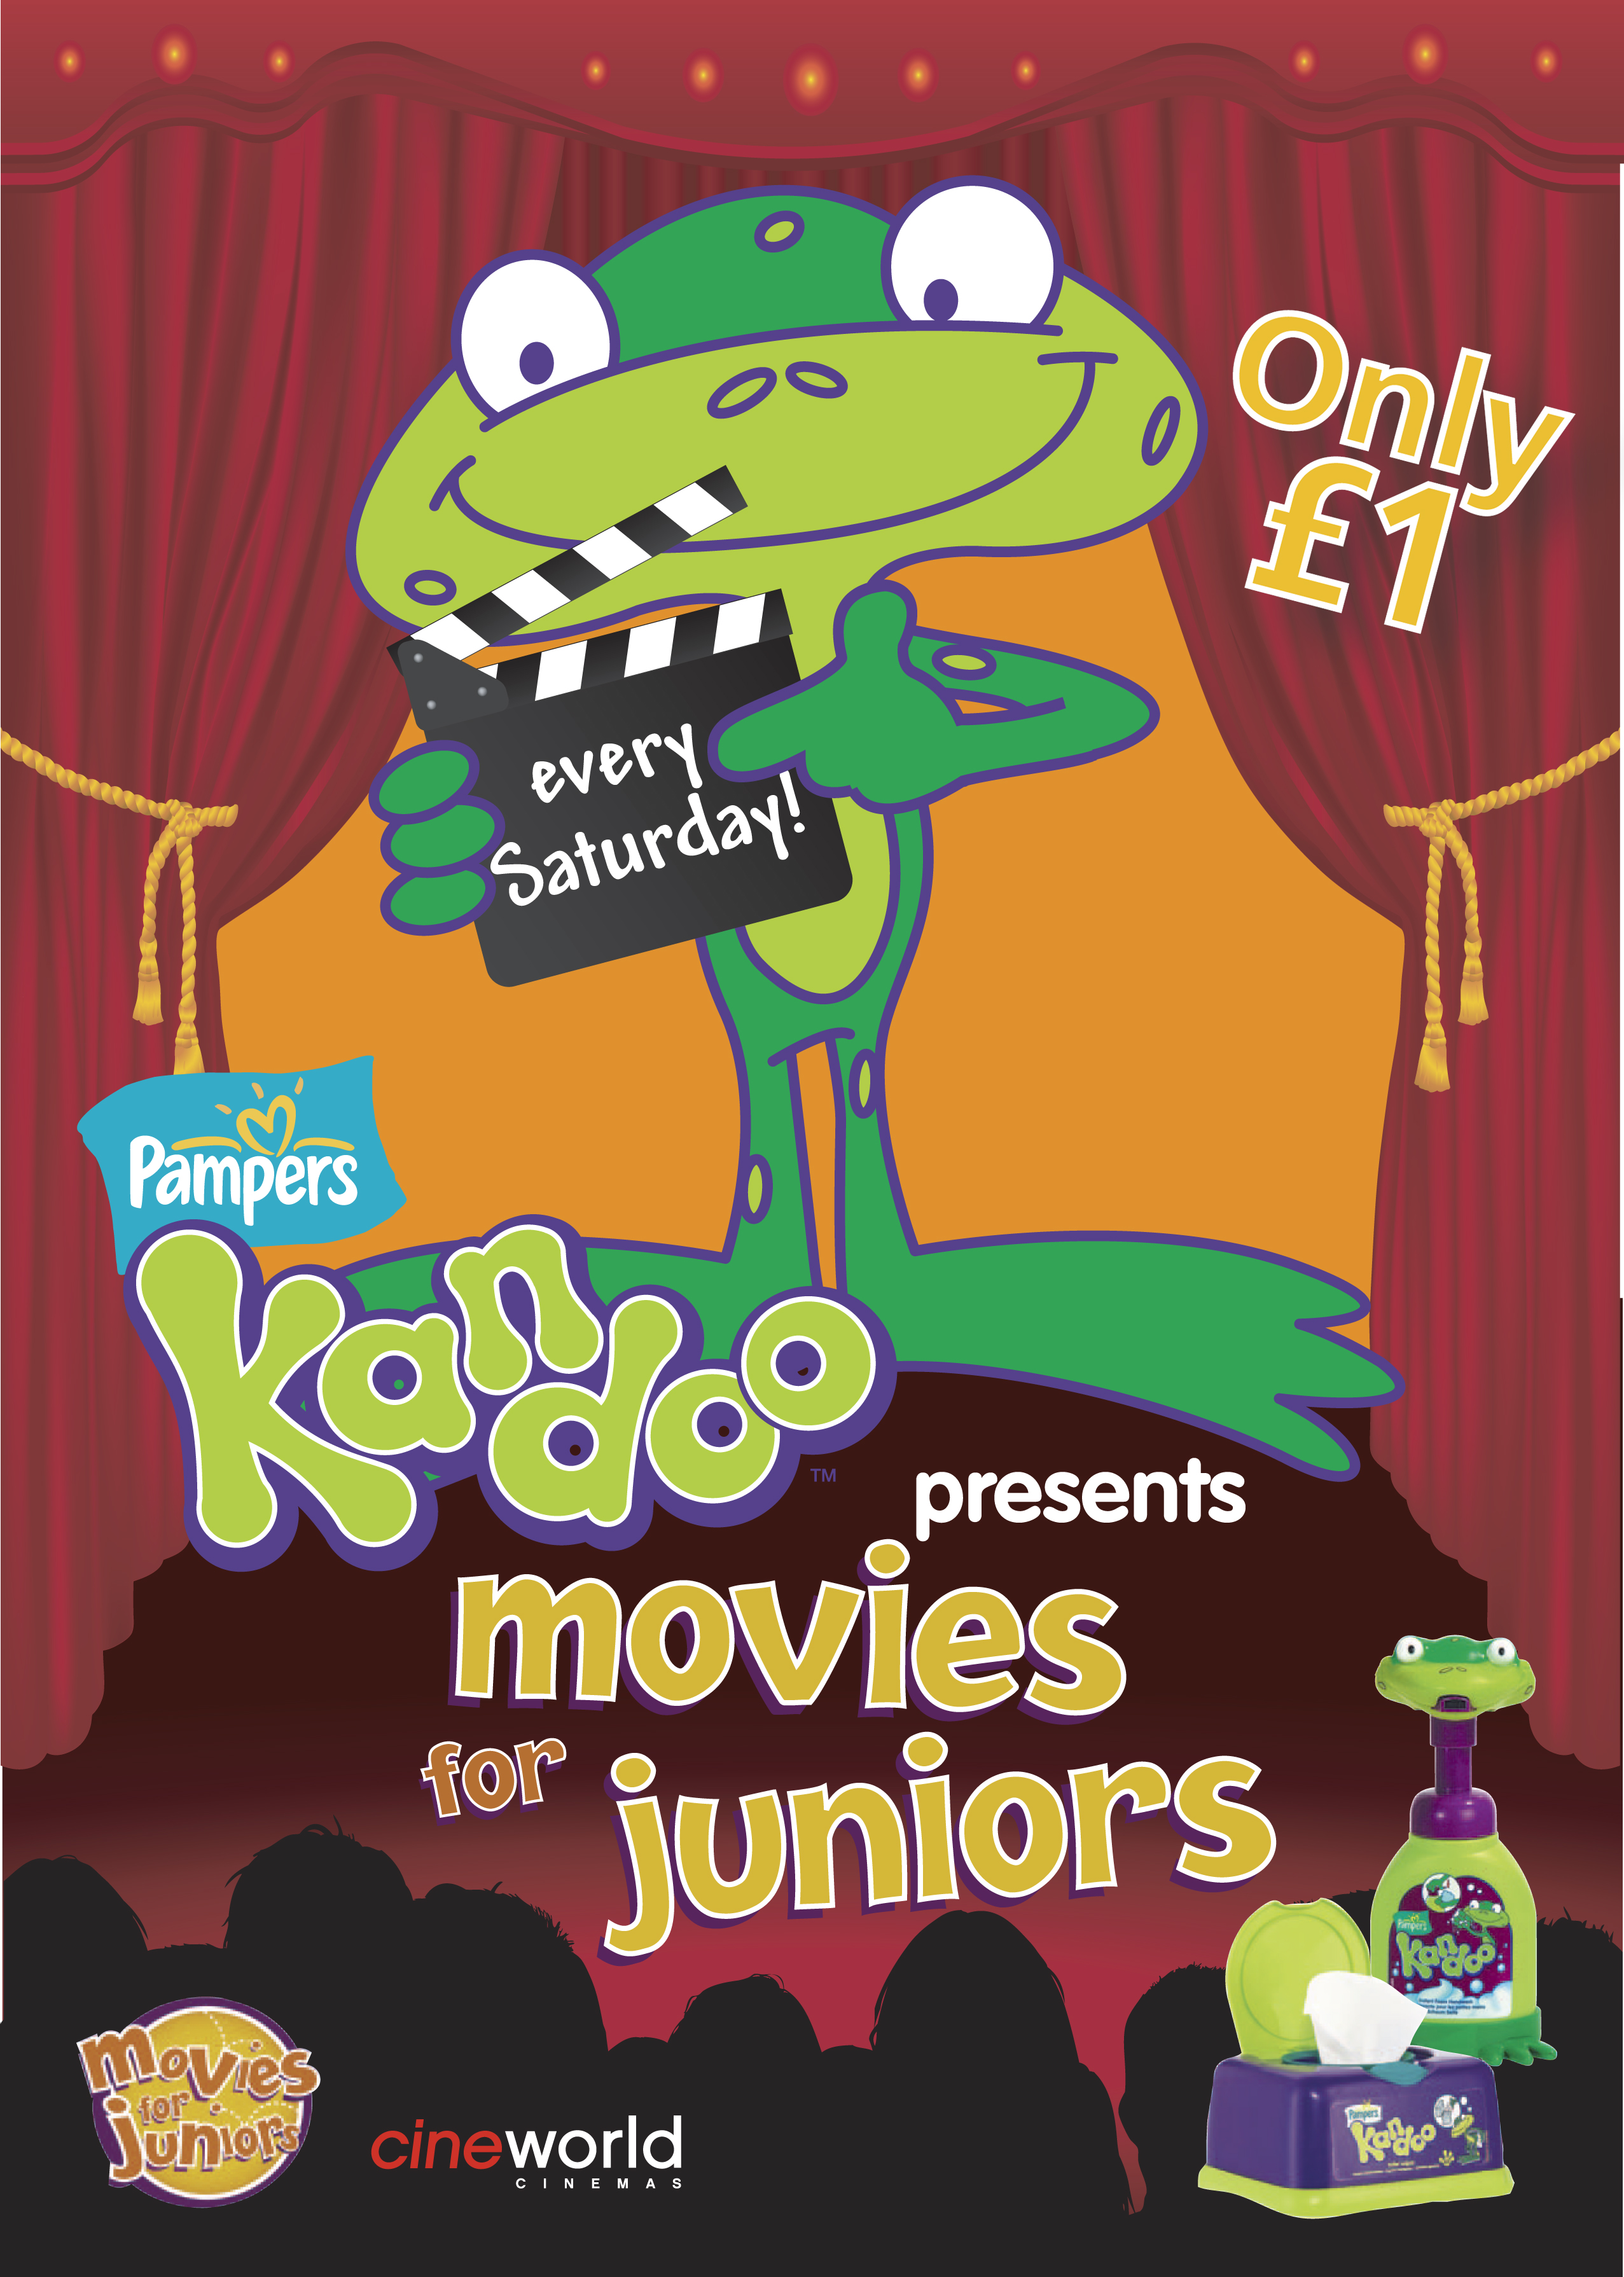 pampers kandoo sponsors movies for juniors at cineworld